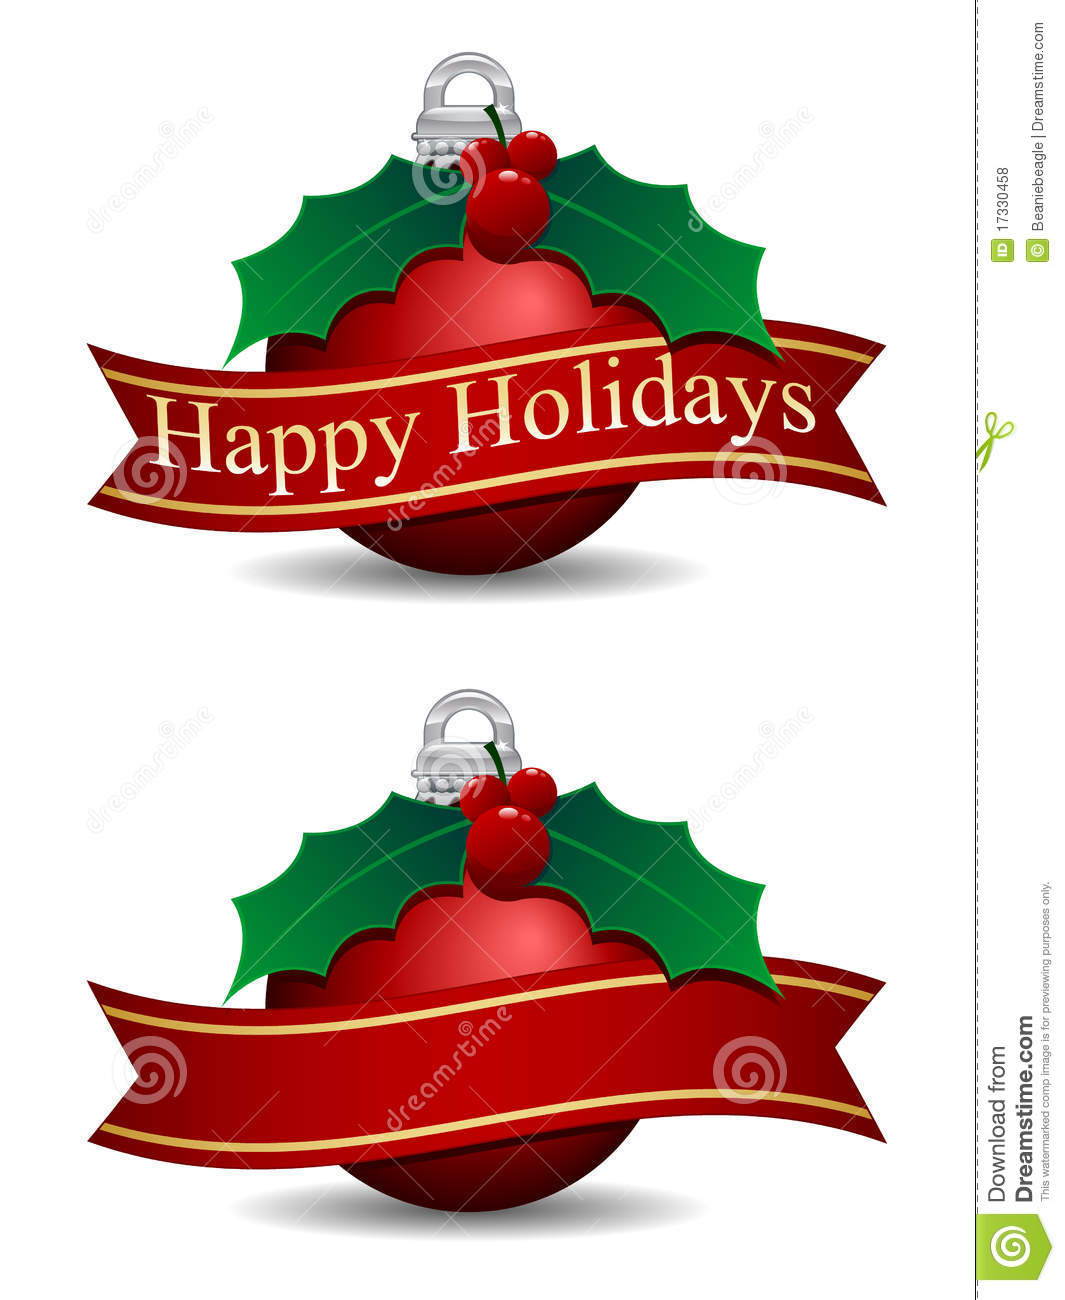 Download Happy Holidays stock vector. Illustration of blank, icons - 17330458